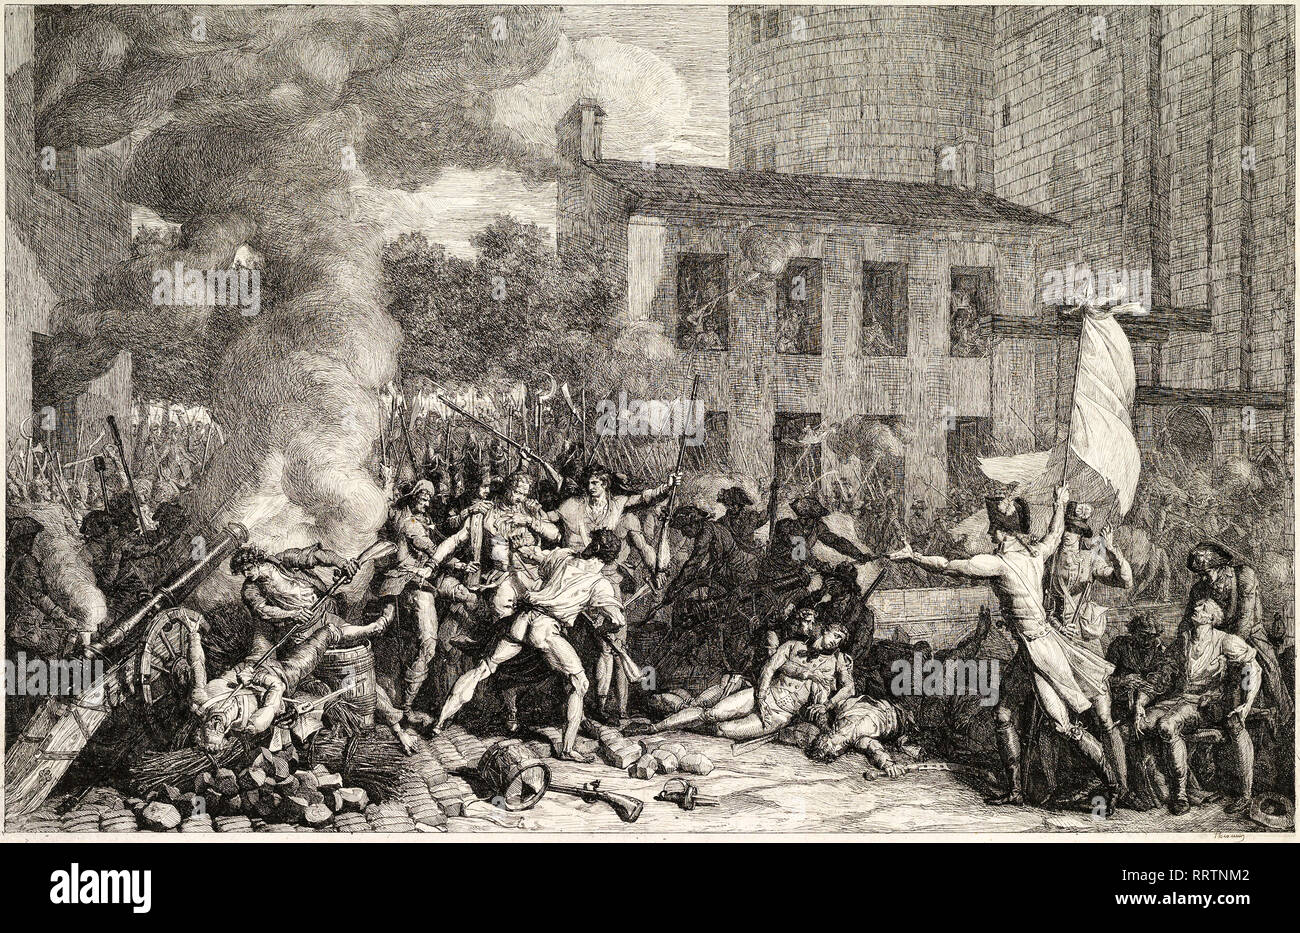 Charles Thevenin, The Storming of the Bastille on 14 July 1789, c. 1793, etching, French revolution print - Stock Image